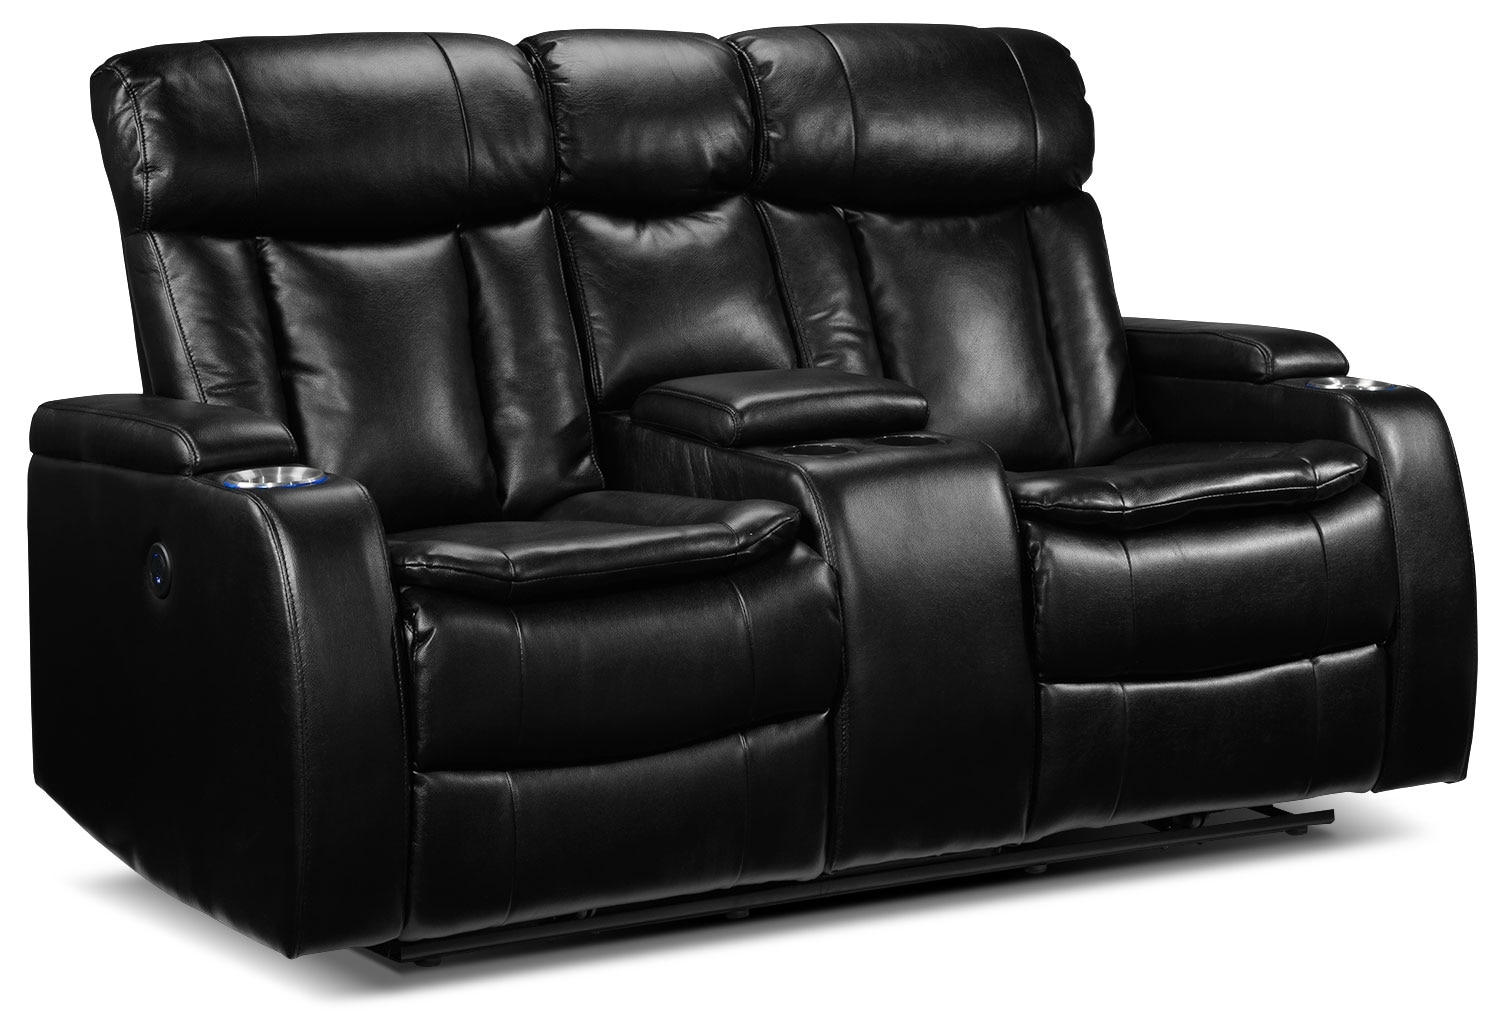 Living Room Furniture - Executive Power Reclining Loveseat w/ Console